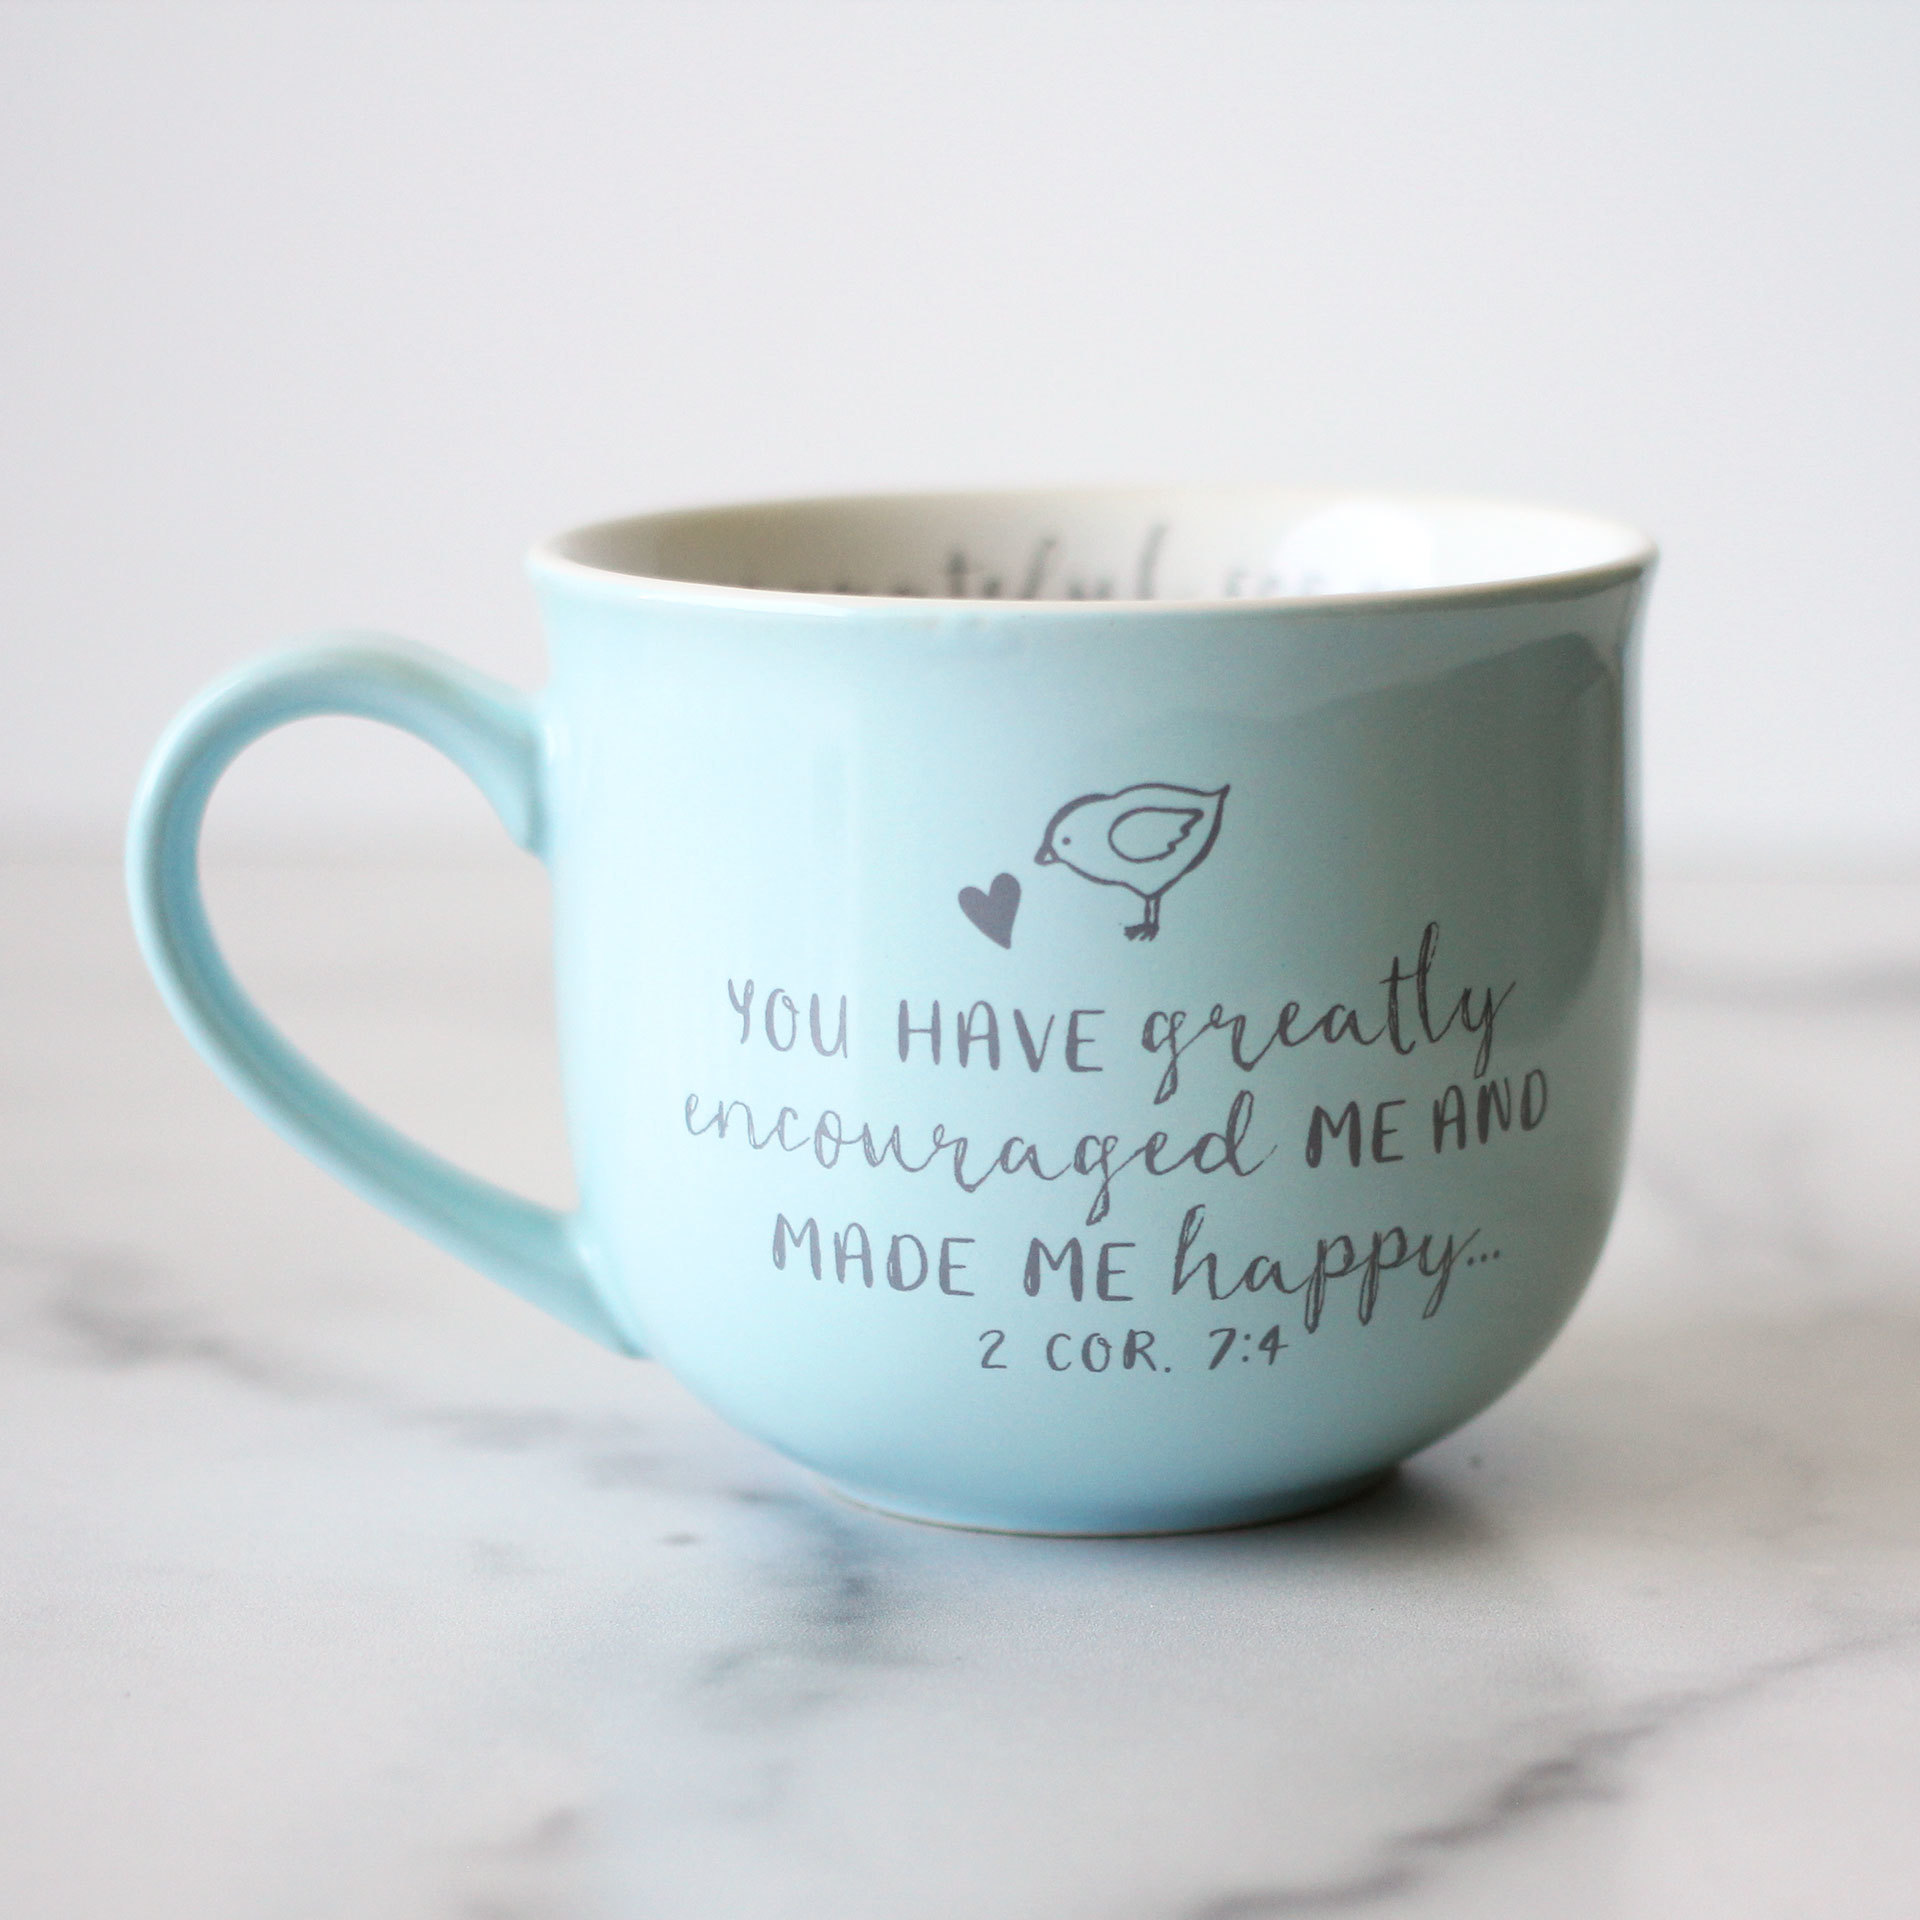 Encouragement Mug